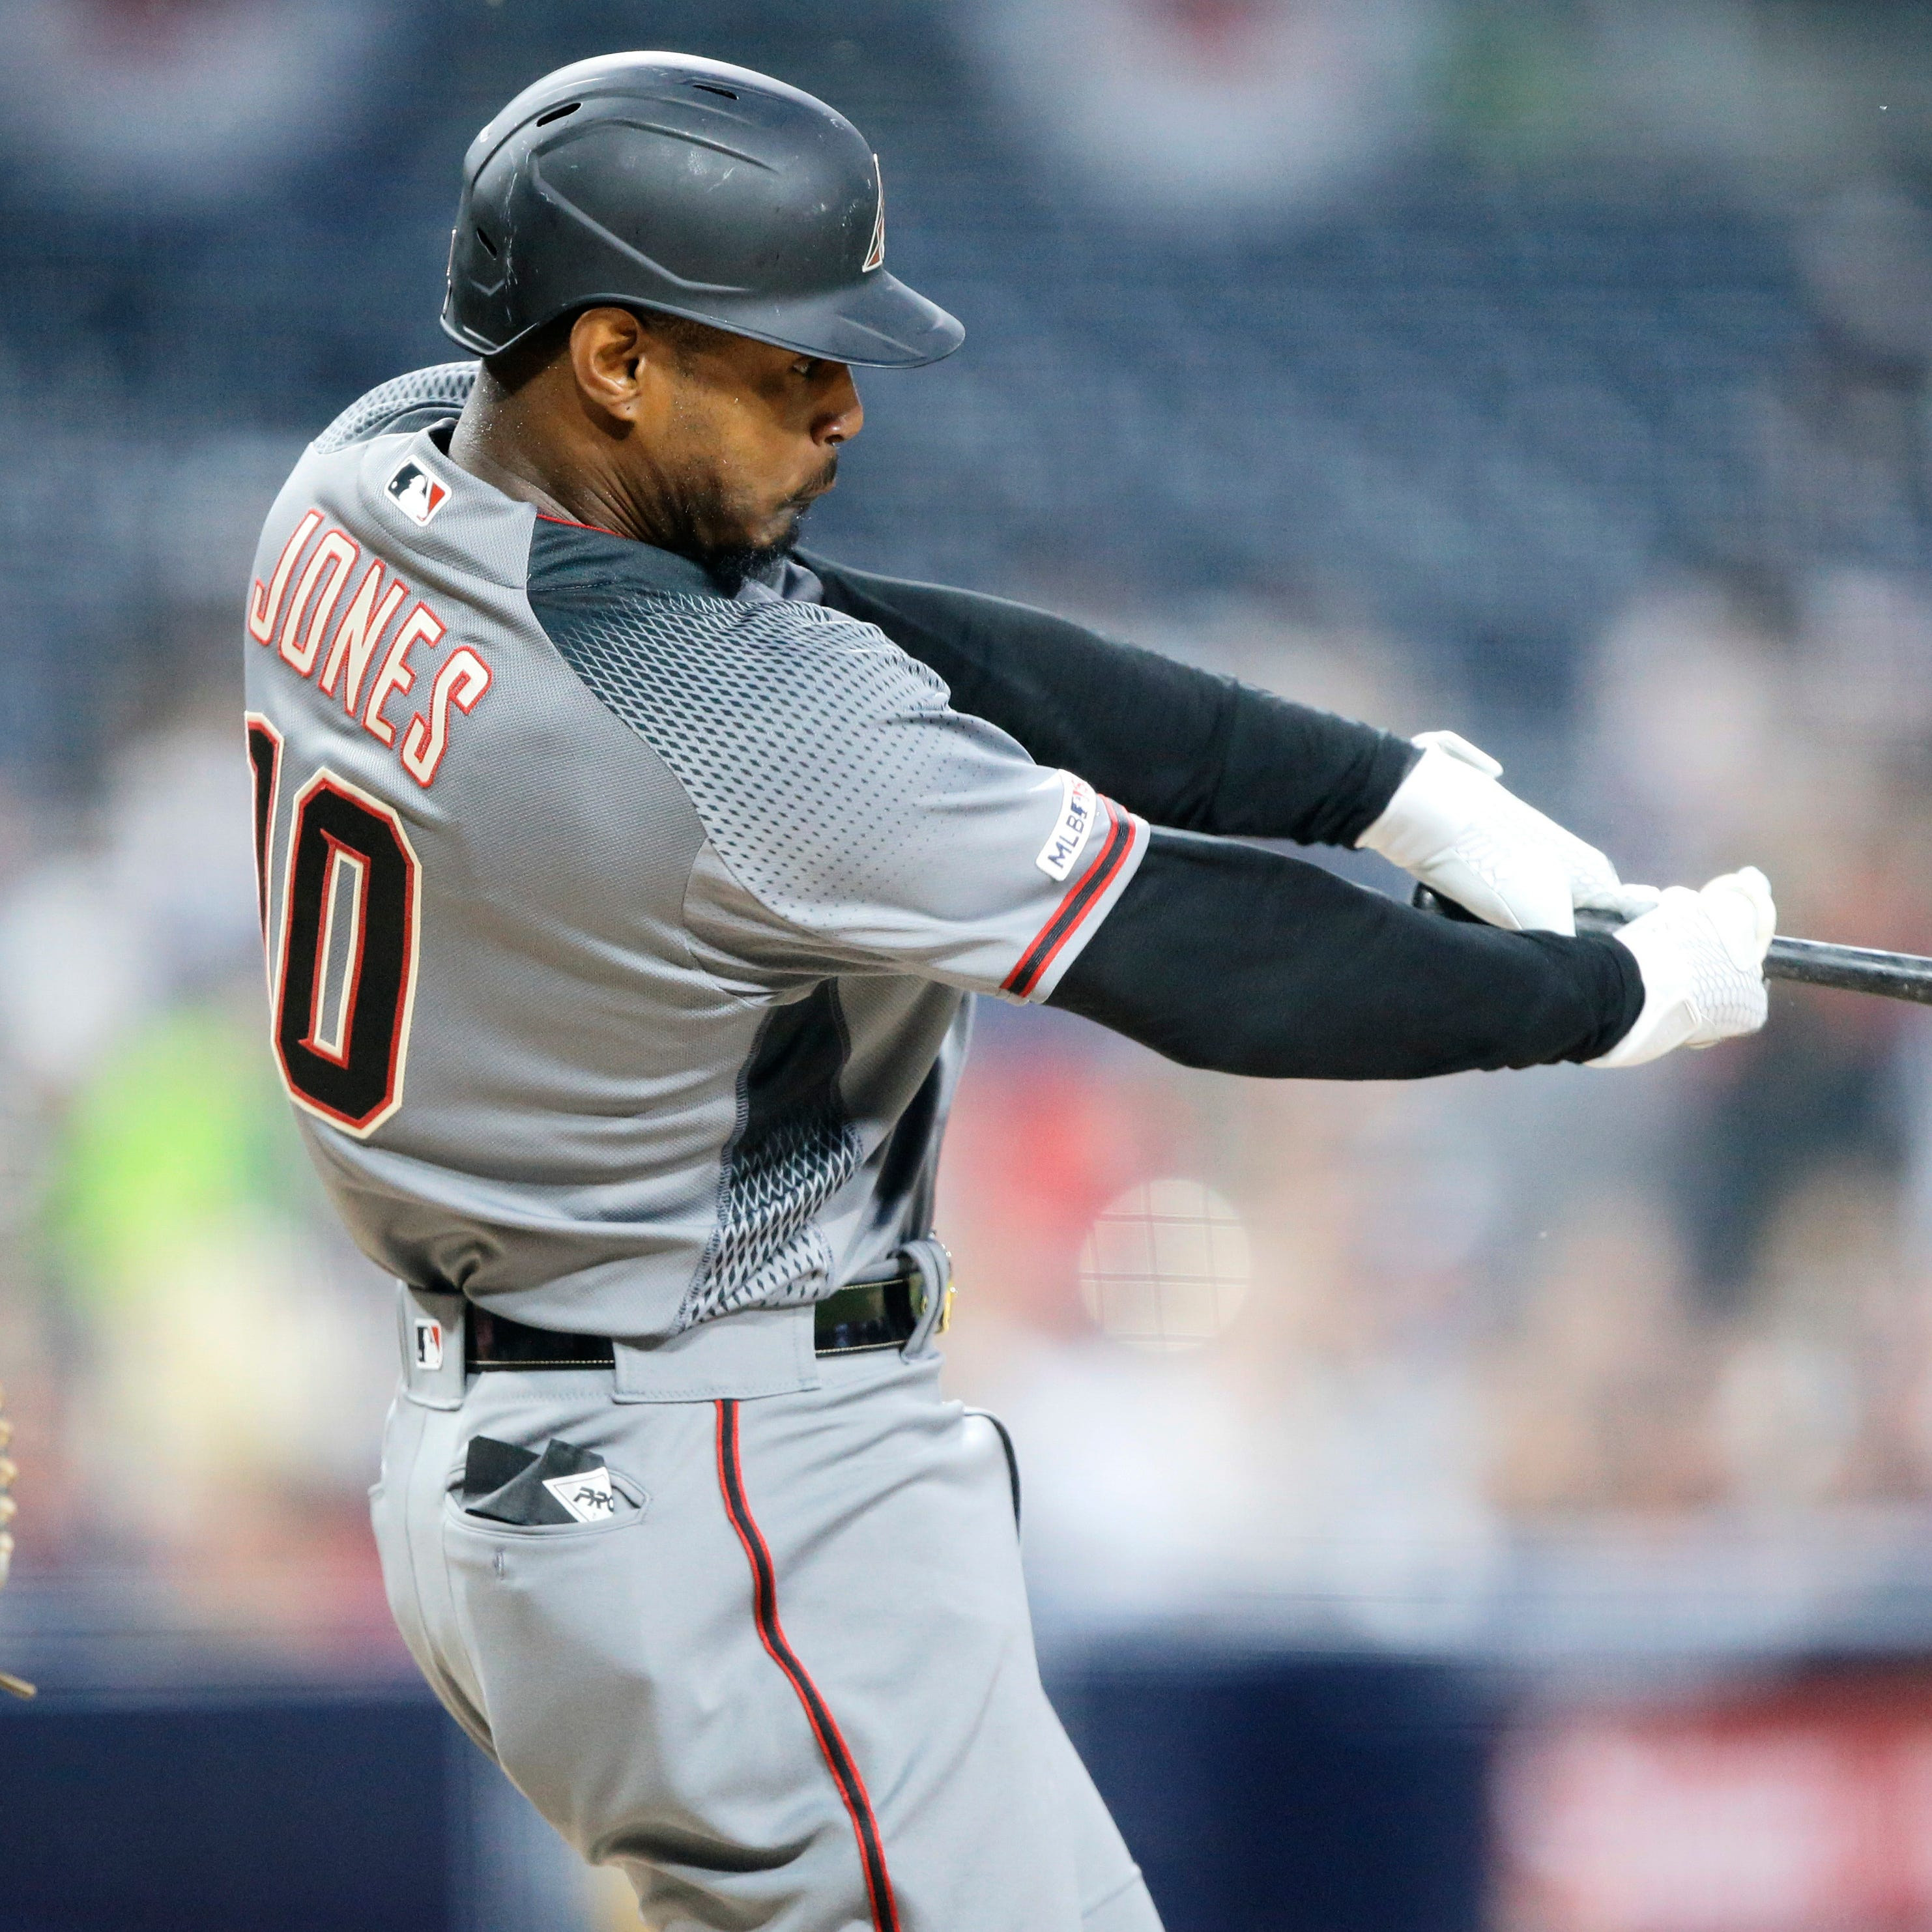 Adam Jones making instant impact with Diamondbacks